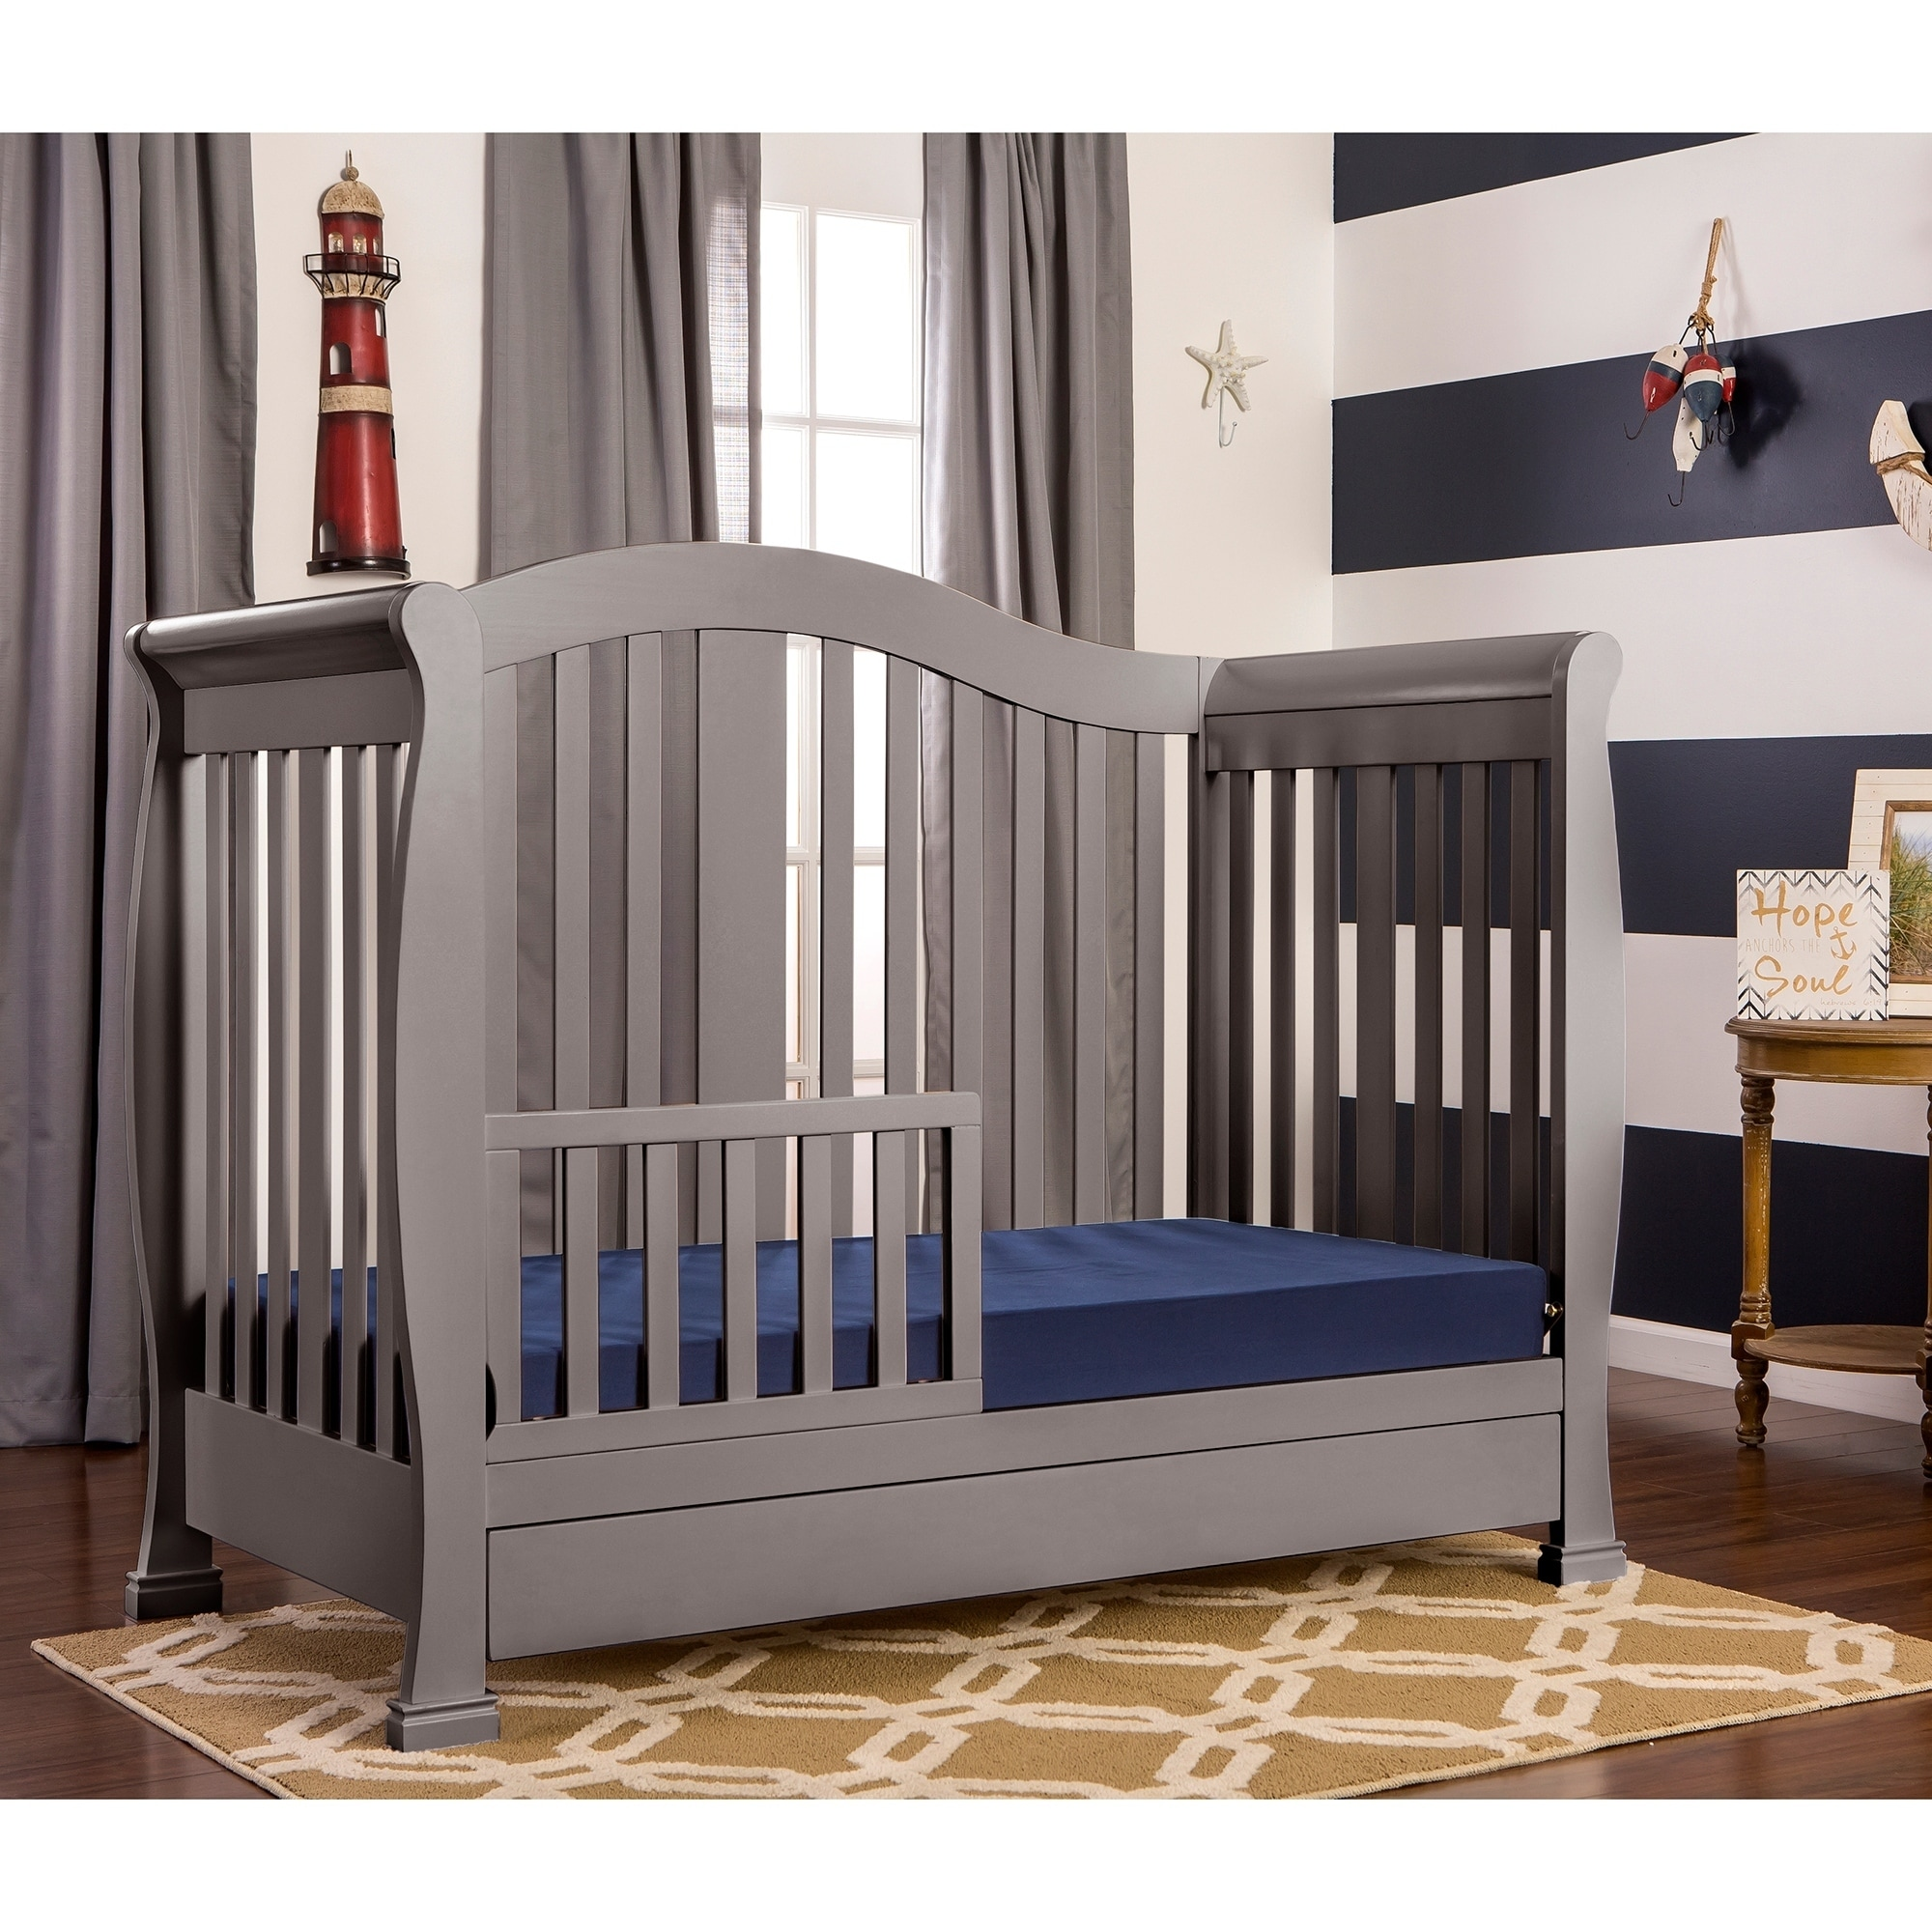 for trends picture brands s baby babies image top on dressing combo casco unbelievable mini crib dream cribs convertible best reviewed and style in xfile stunning of me table